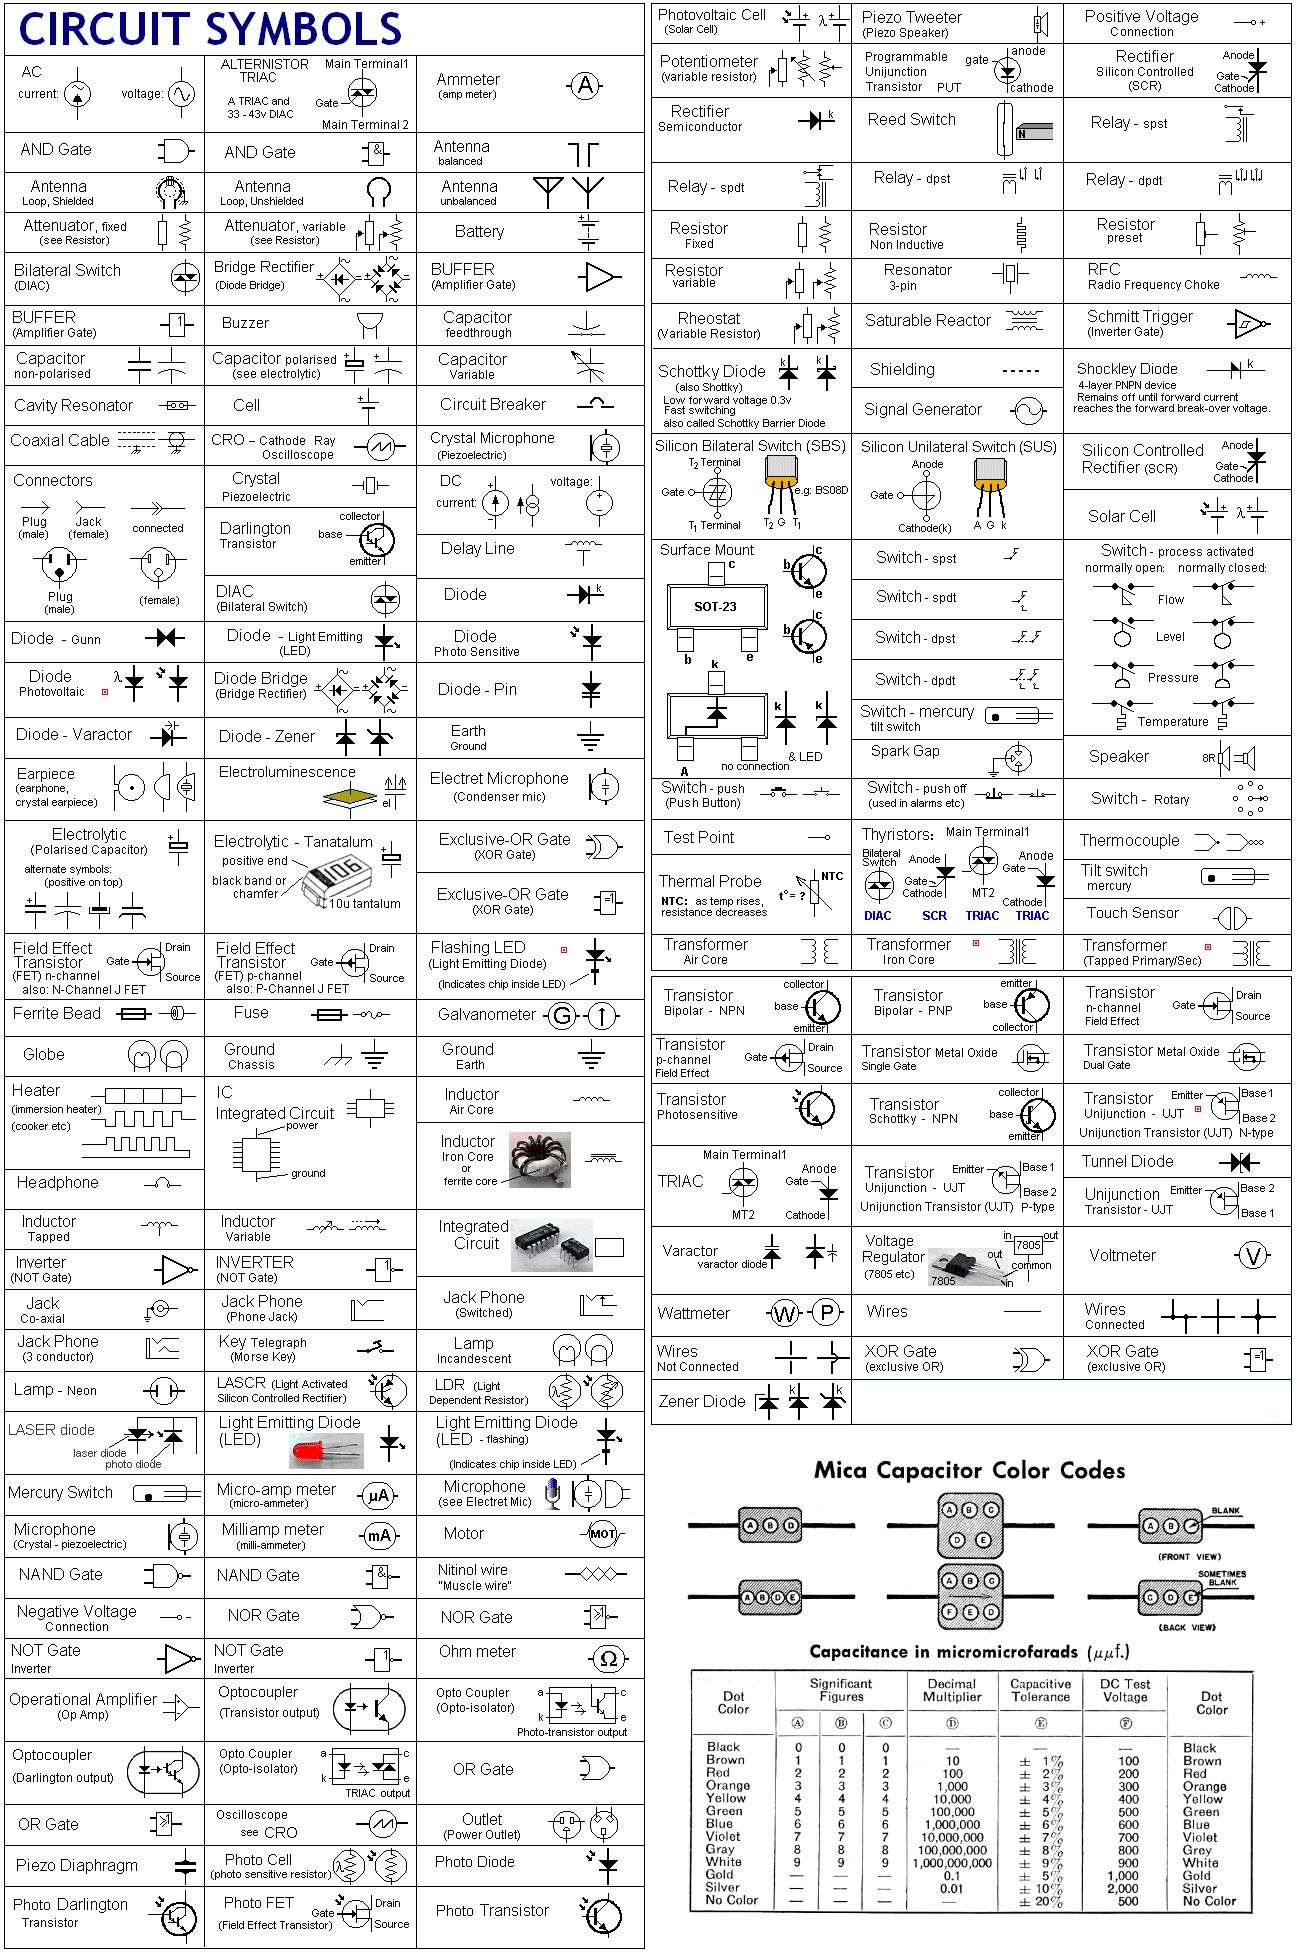 Electrical Wiring Diagrams Symbols : Images about schematic symbols on pinterest buzzer